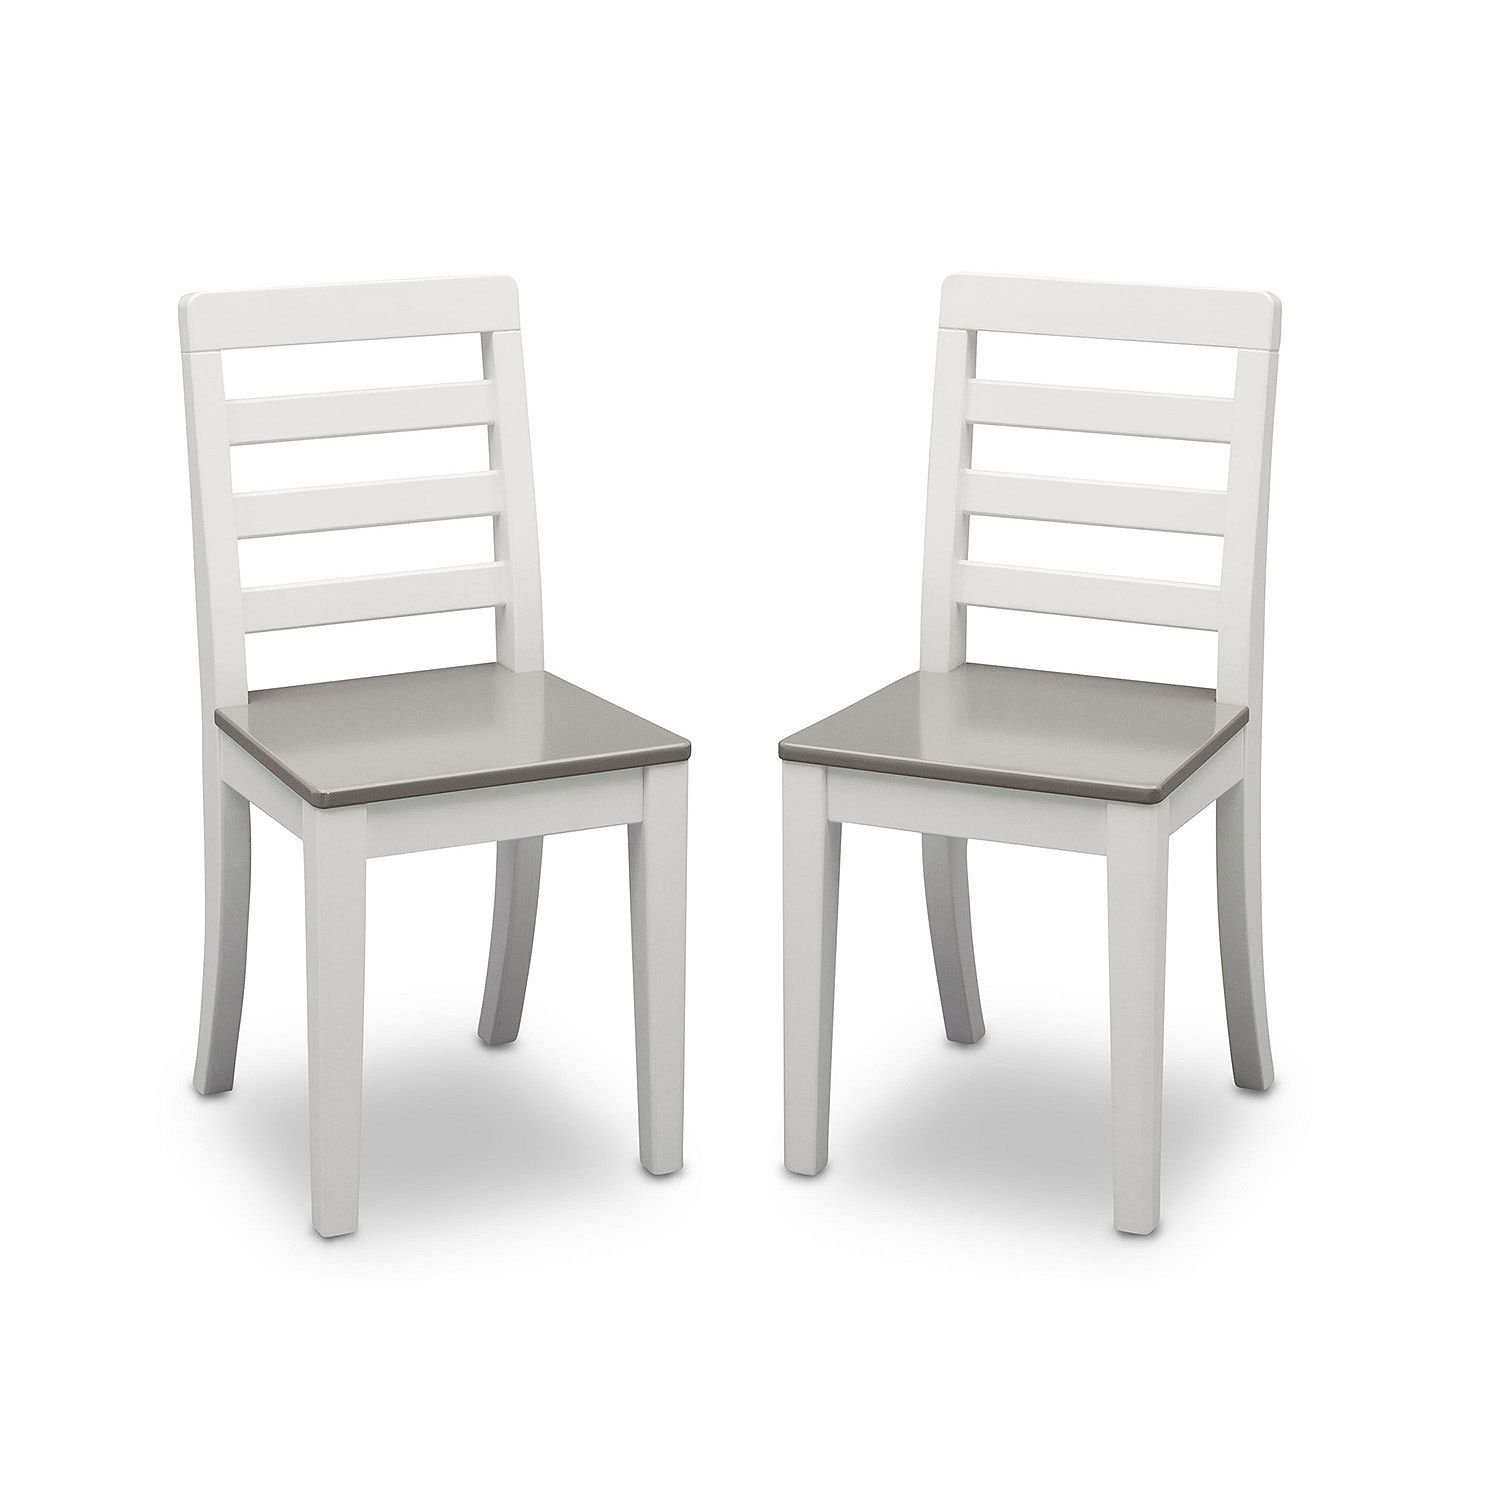 Delta Children Table and Chairs, 3-Piece Set (White and Grey) by Delta Children (Image #1)